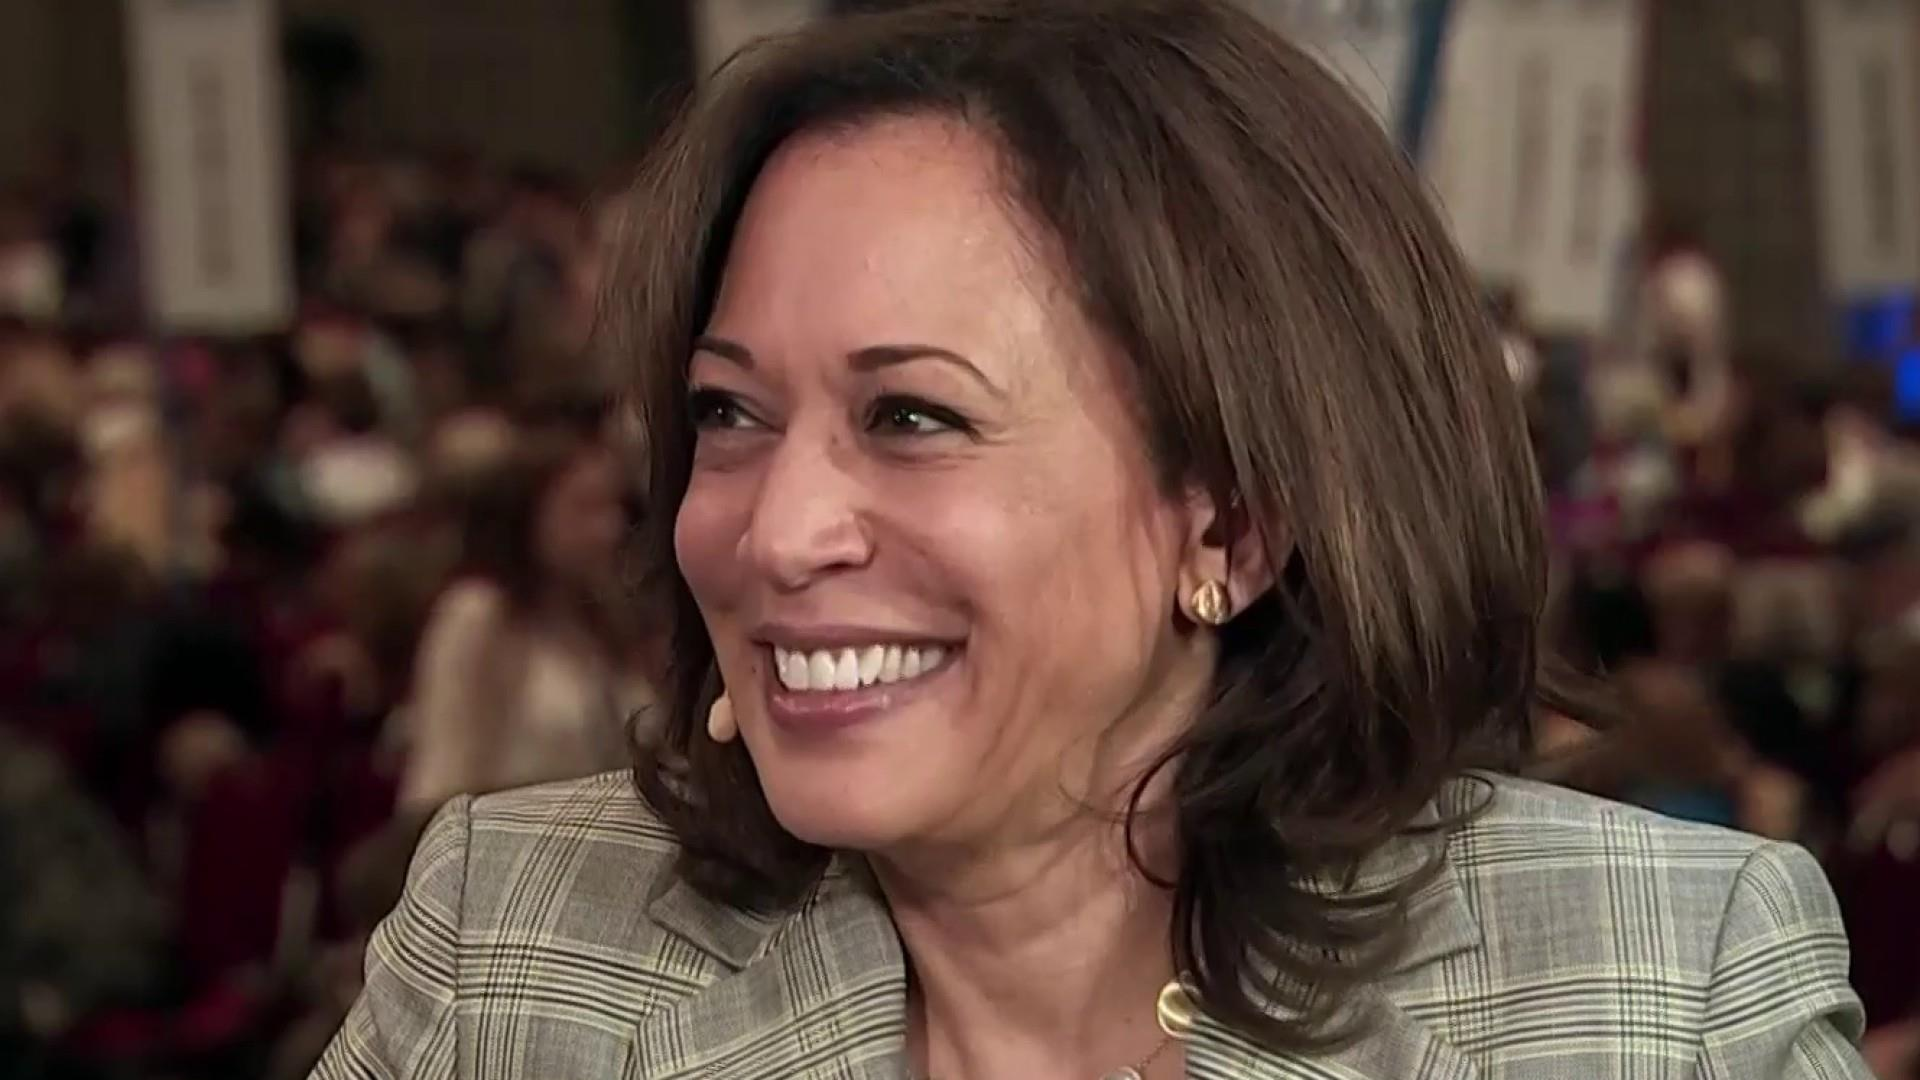 Harris says 'folks are woke' after the 2016 election of Trump